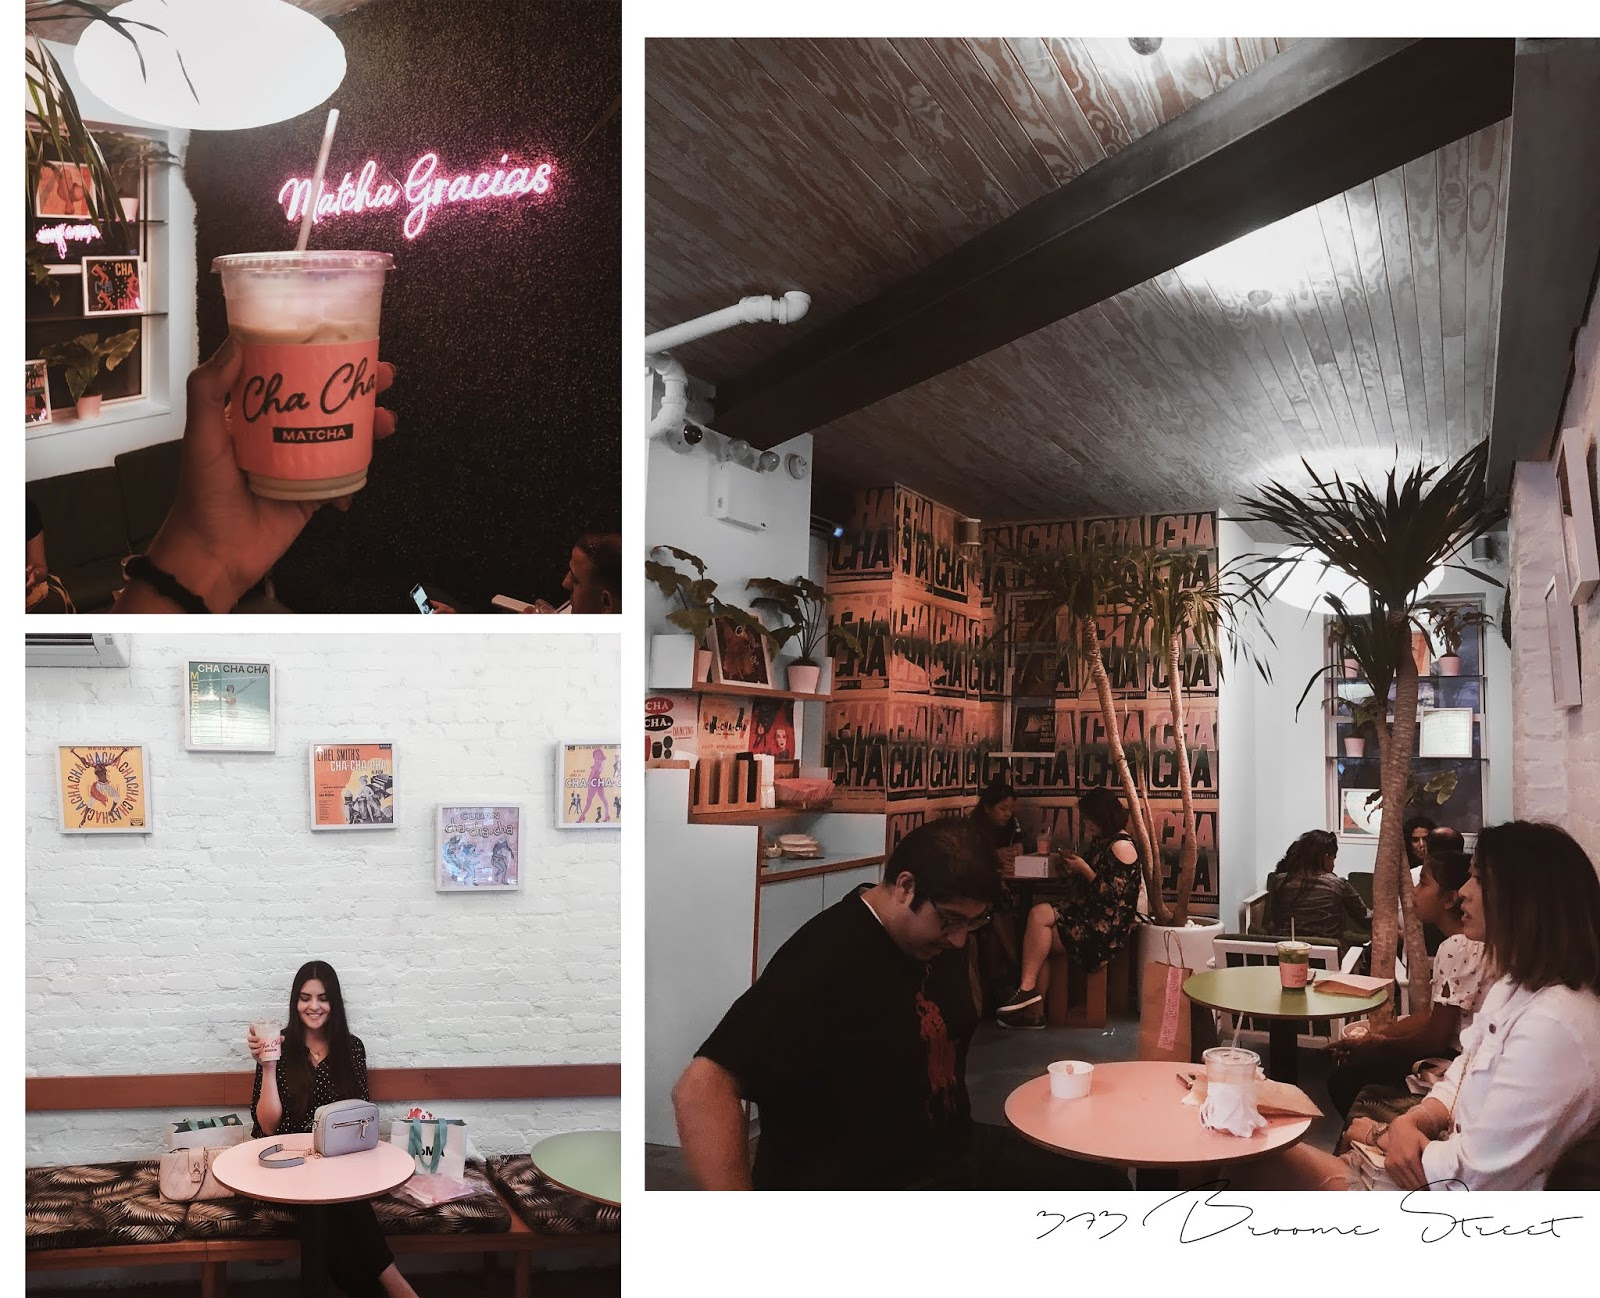 new york instagram places guide food spots instagrammable worthy chacha matcha soho 2